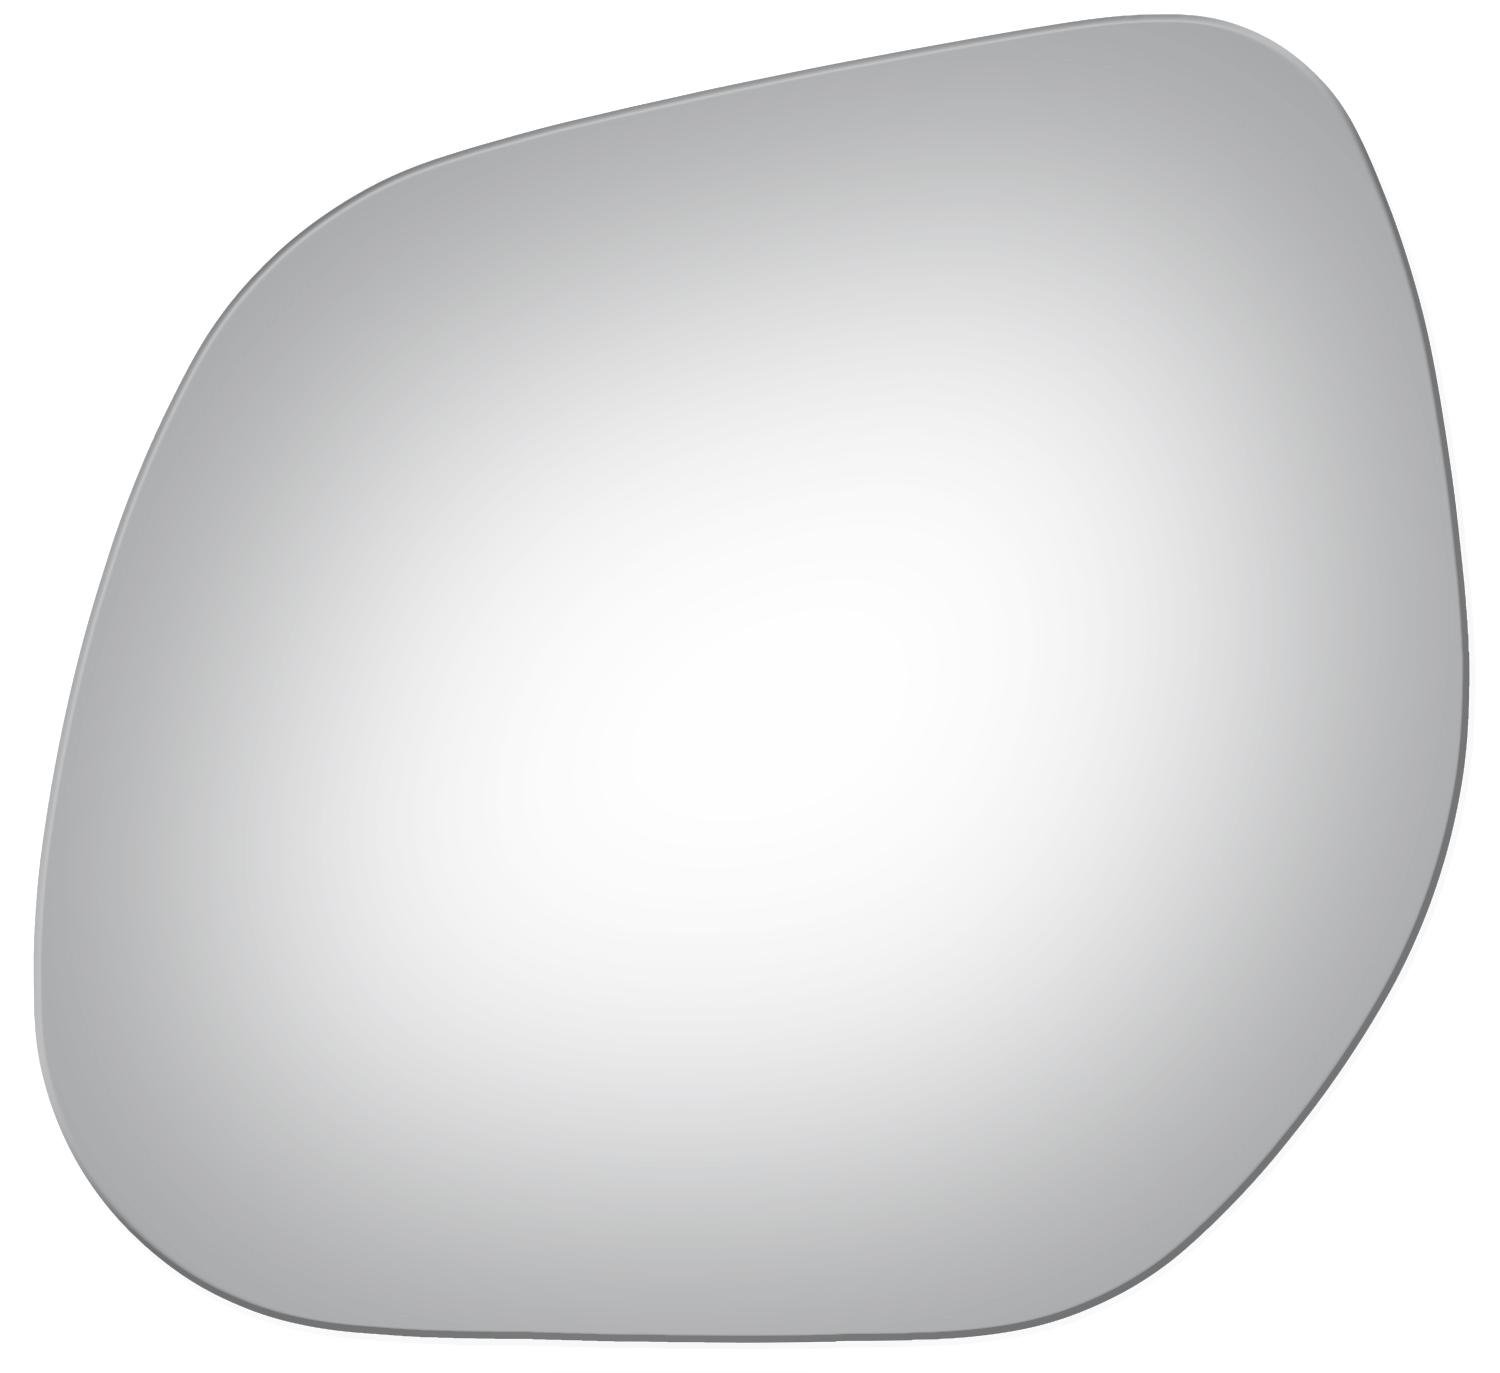 2007-2013 MITSUBISHI OUTLANDER Driver Side Replacement Mirror Glass Burco